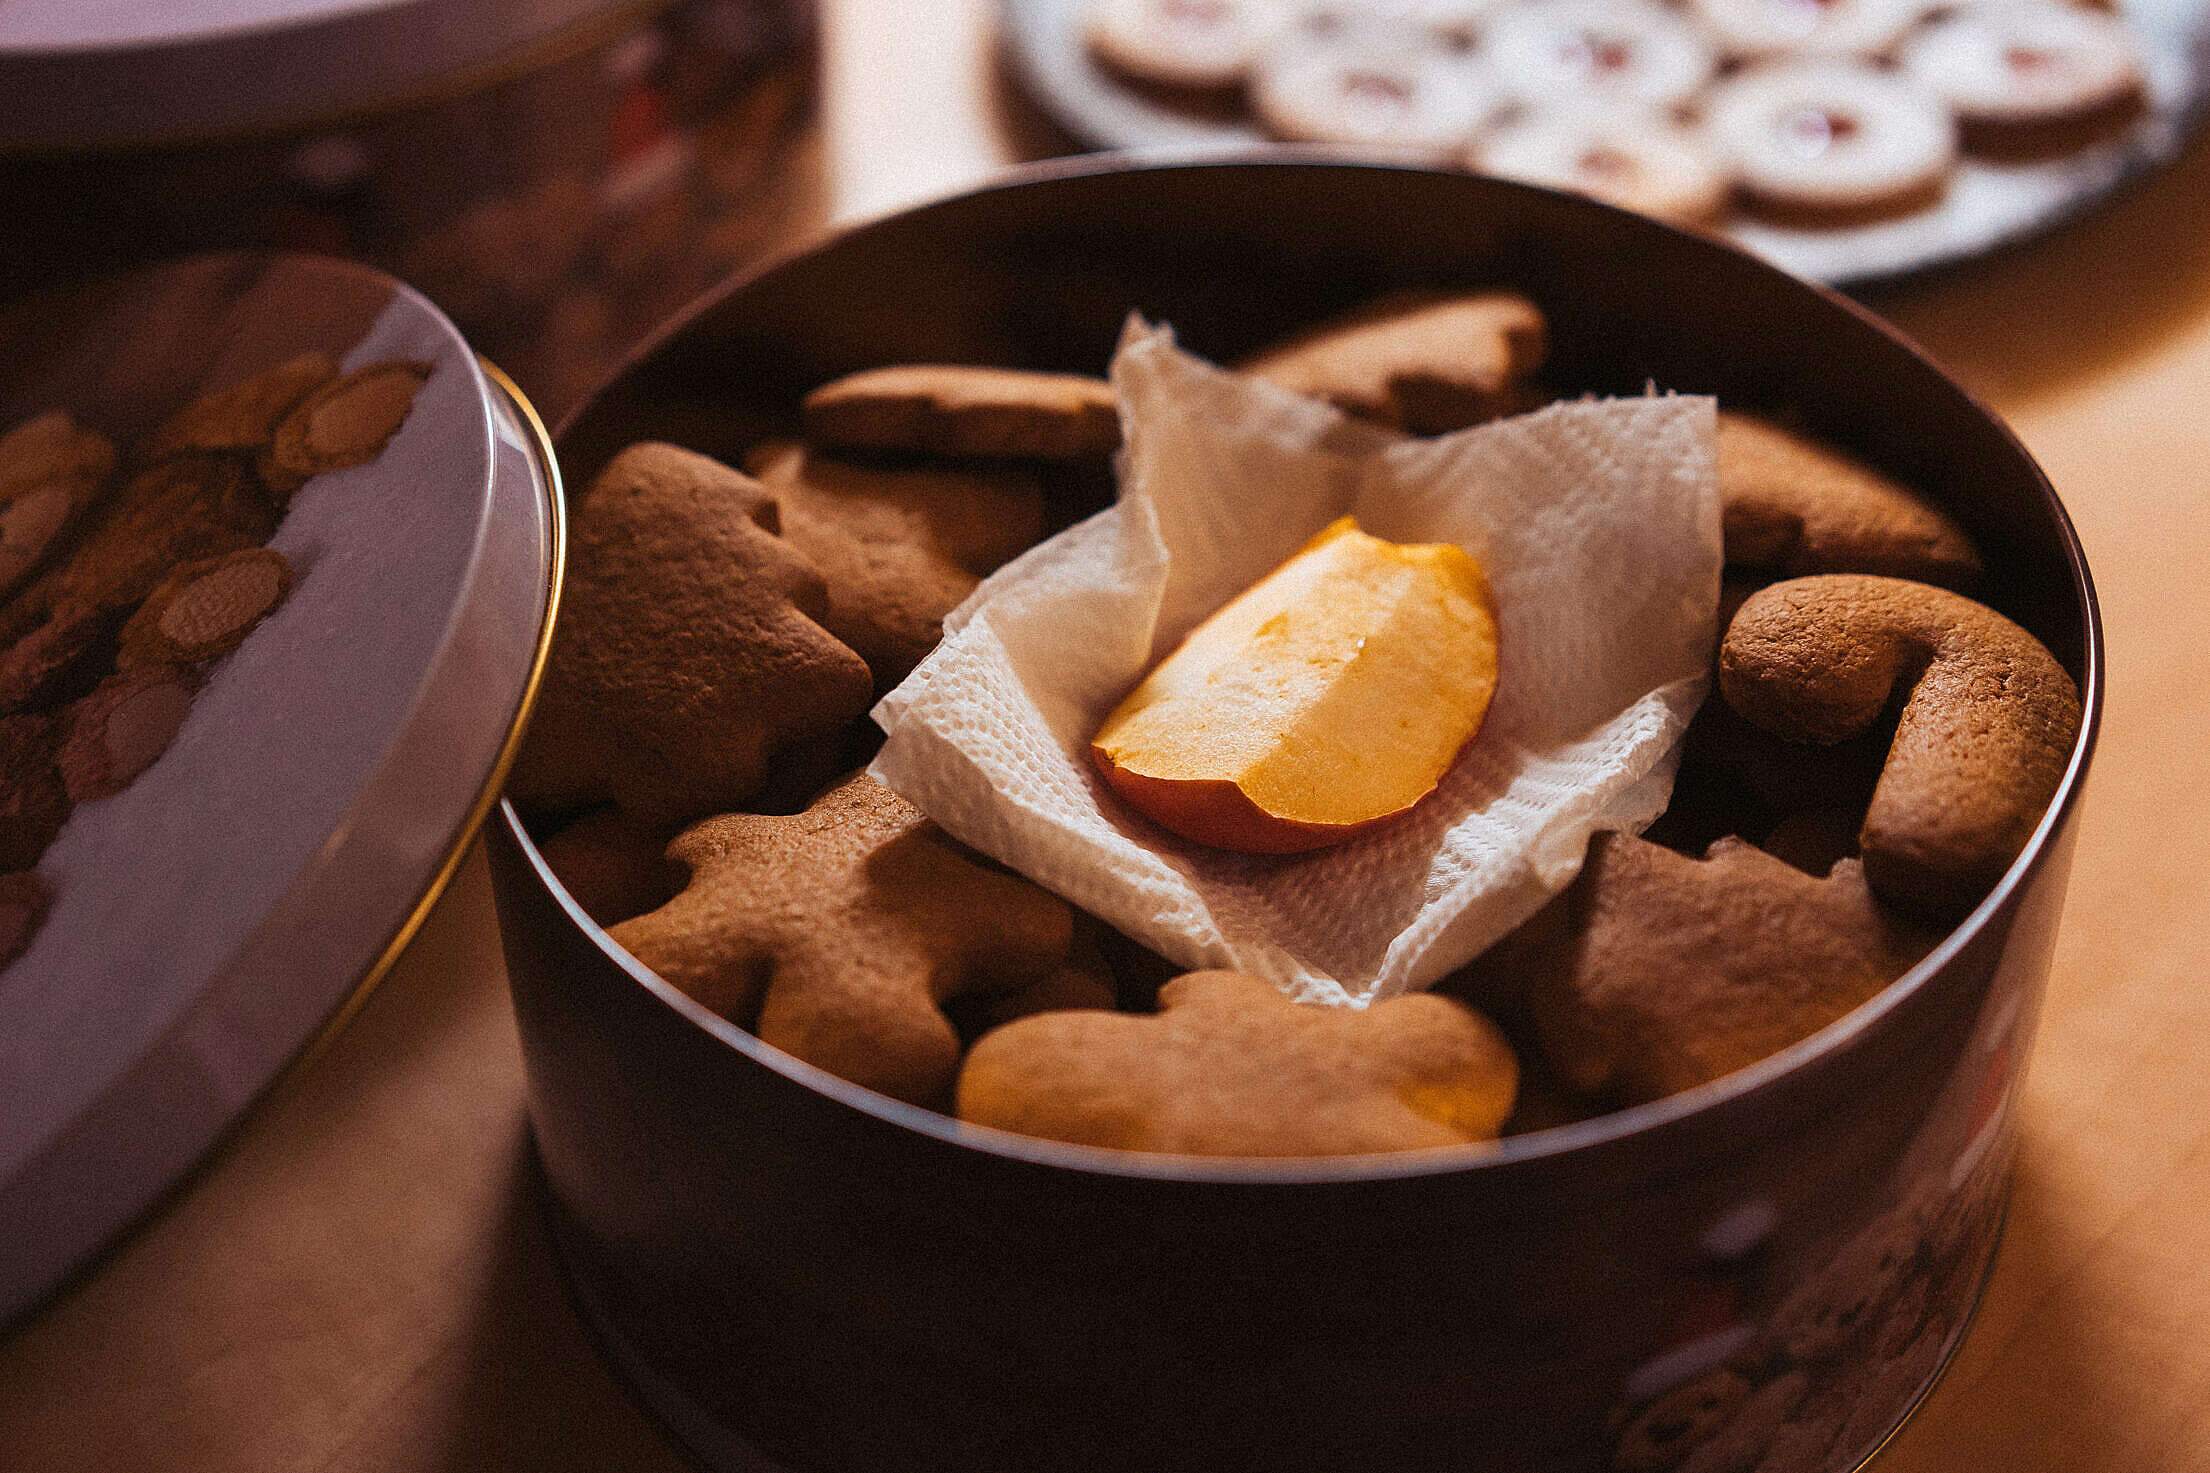 Adding Apple to Make Christmas Gingerbread Cookies More Soft Free Stock Photo